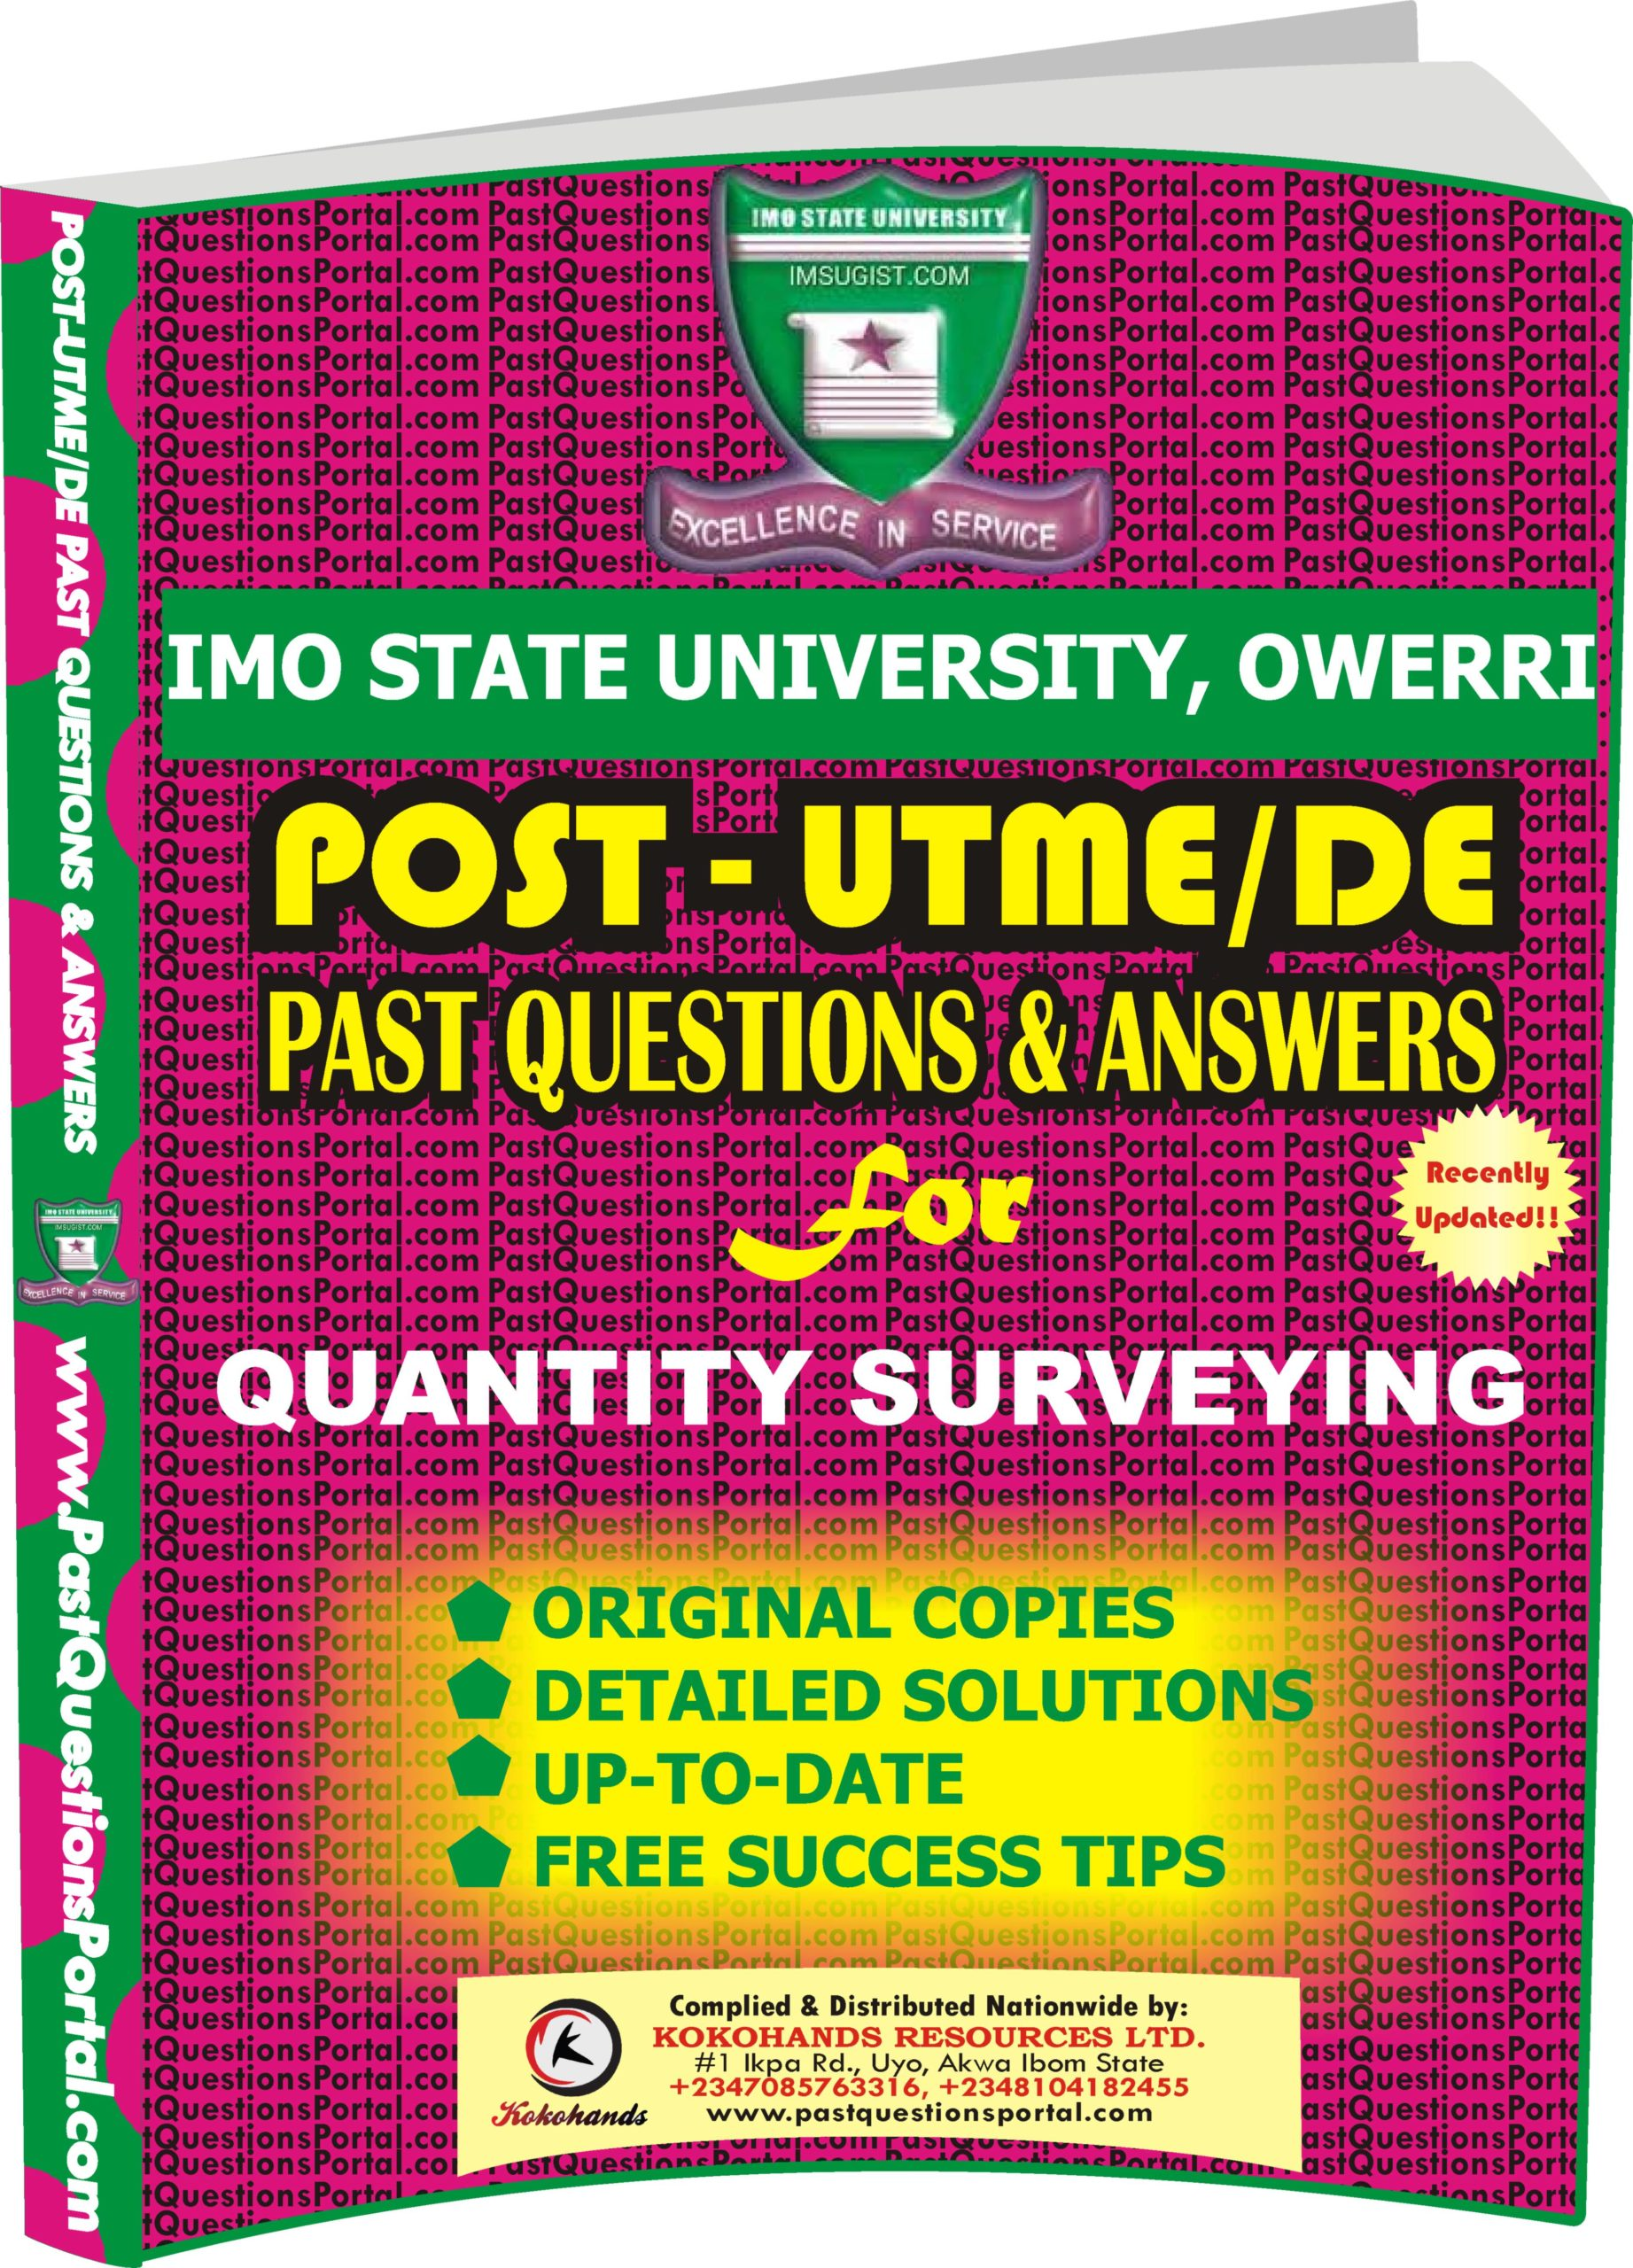 IMSU Post UTME Past Questions for QUANTITY SURVEYING